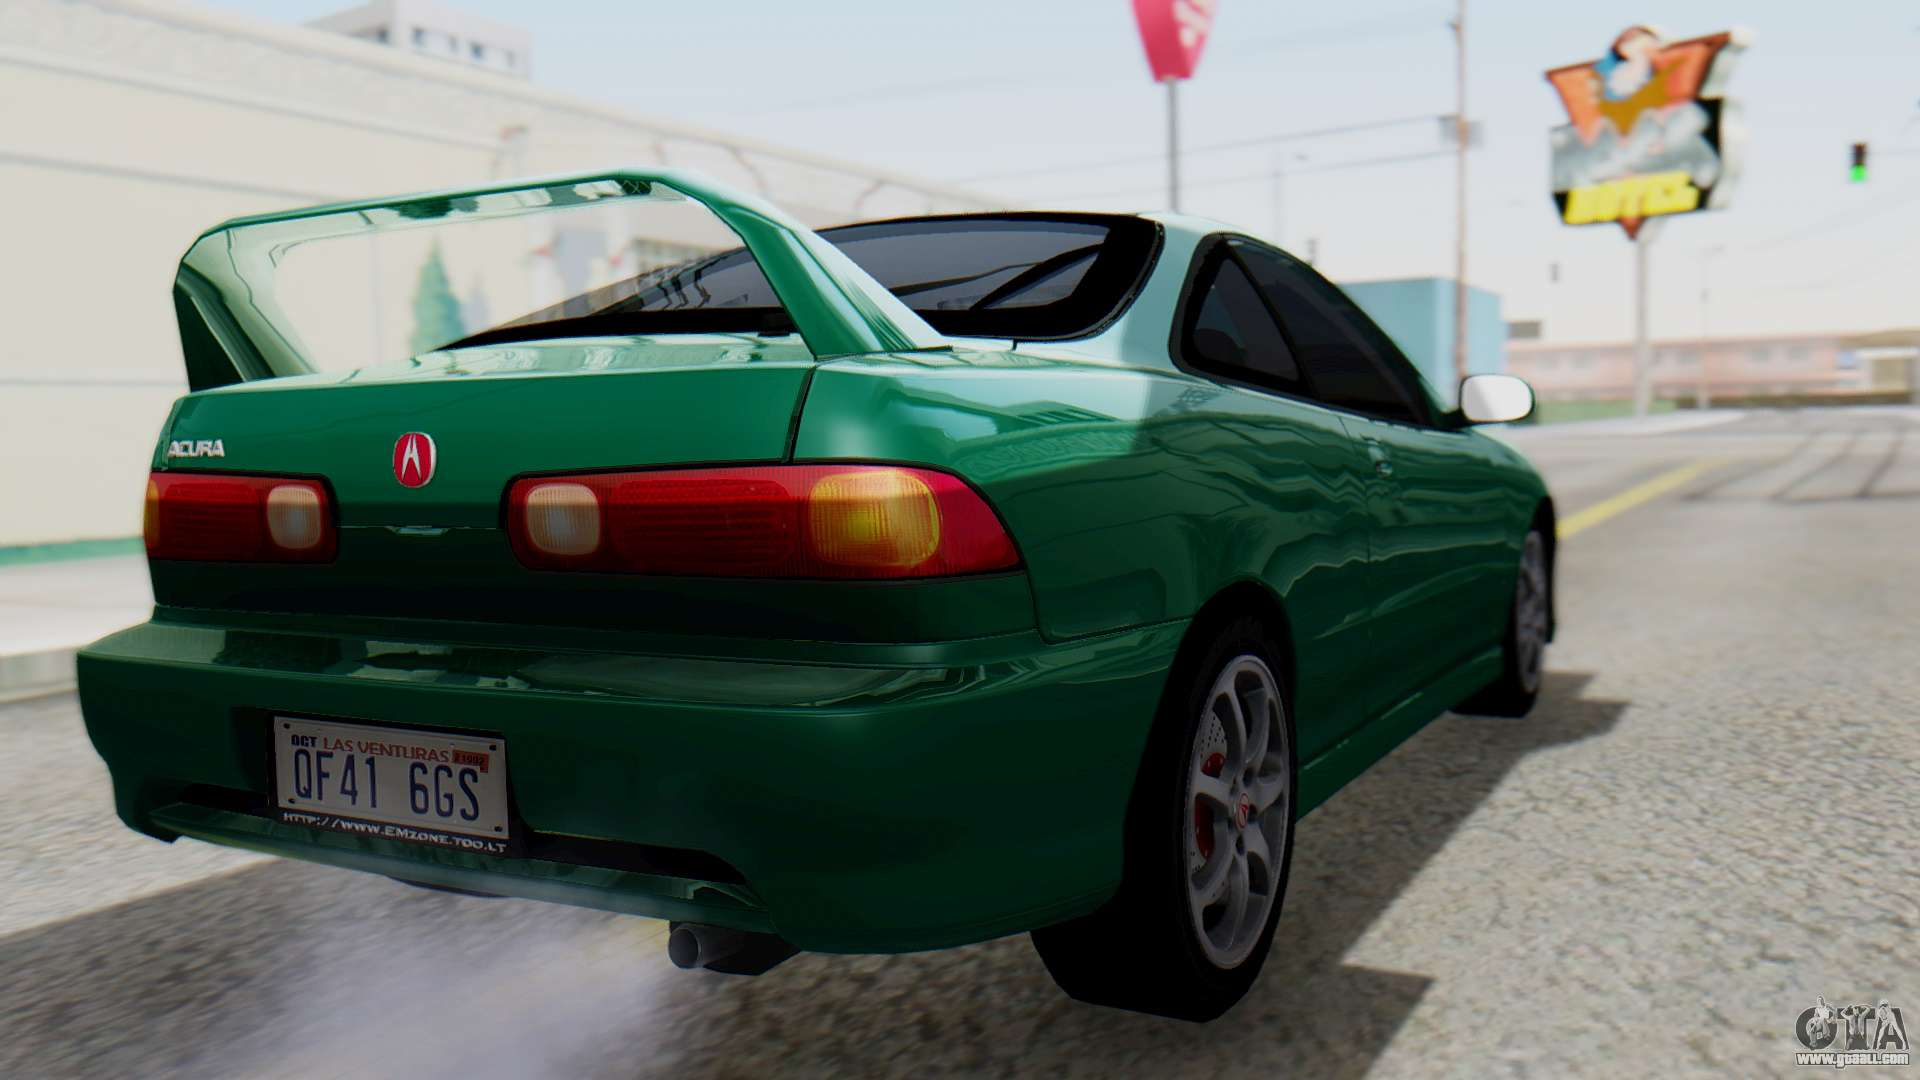 integra likewise fast and - photo #16